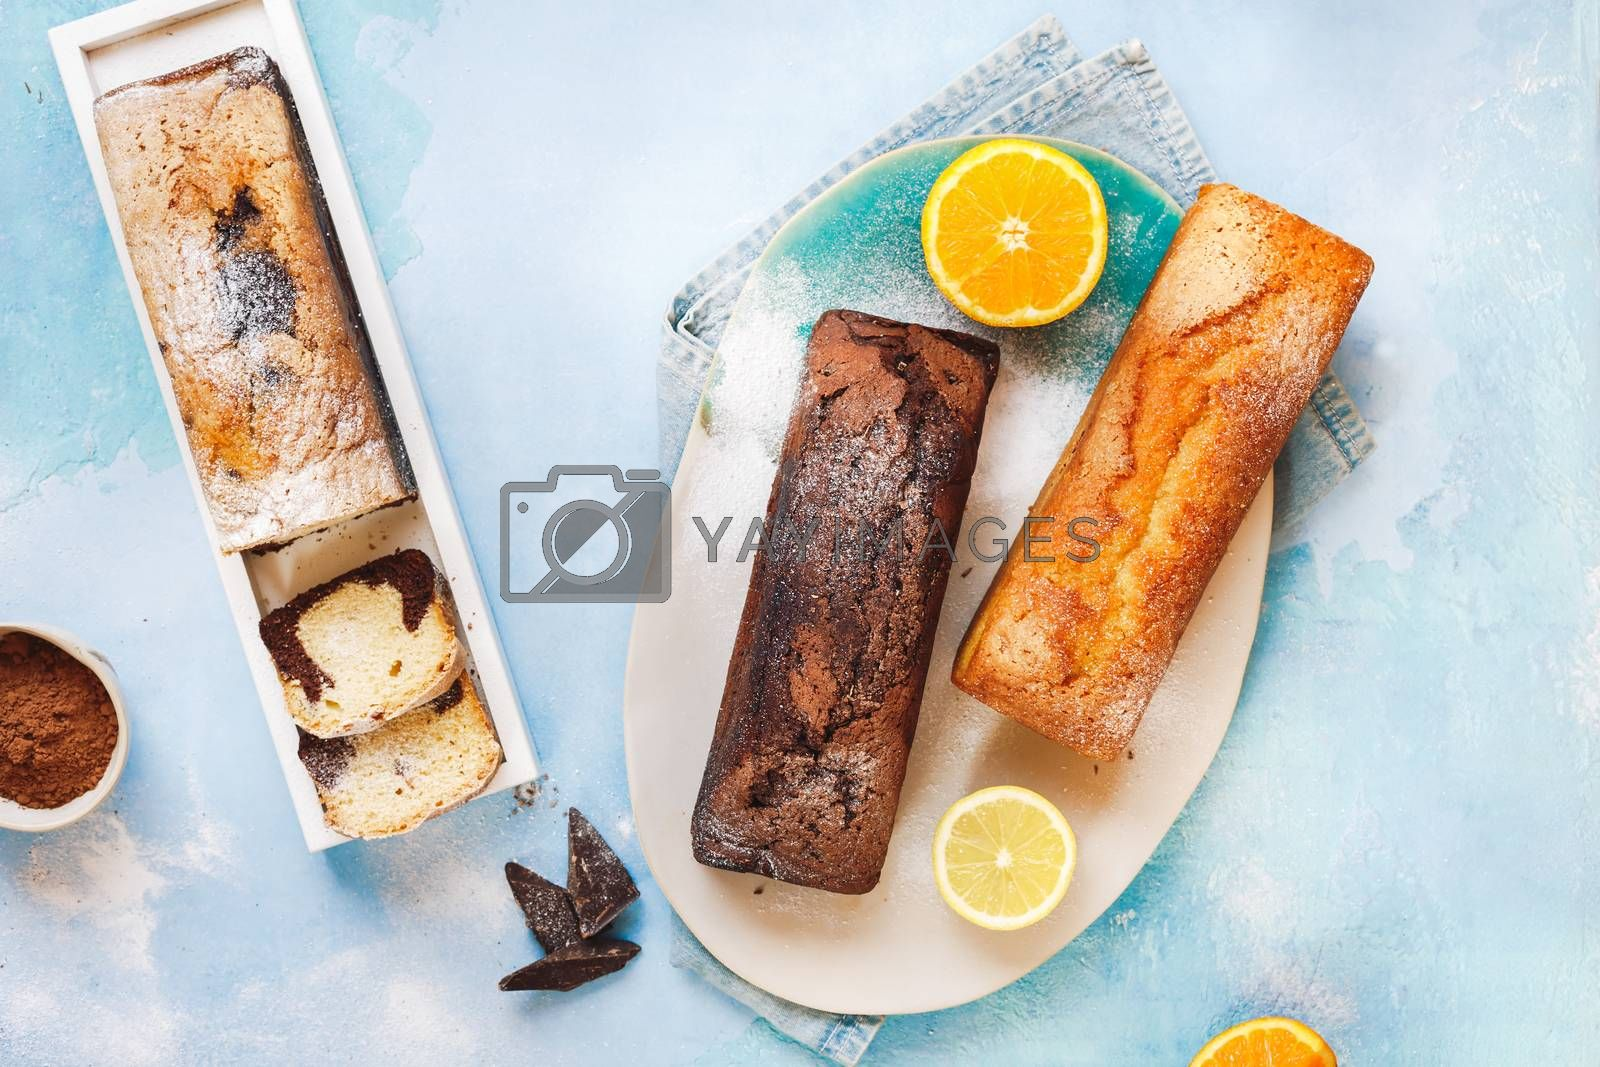 Assorted pound cakes whole and sliced into portions lying on a coloured rustic table, top view, blank space